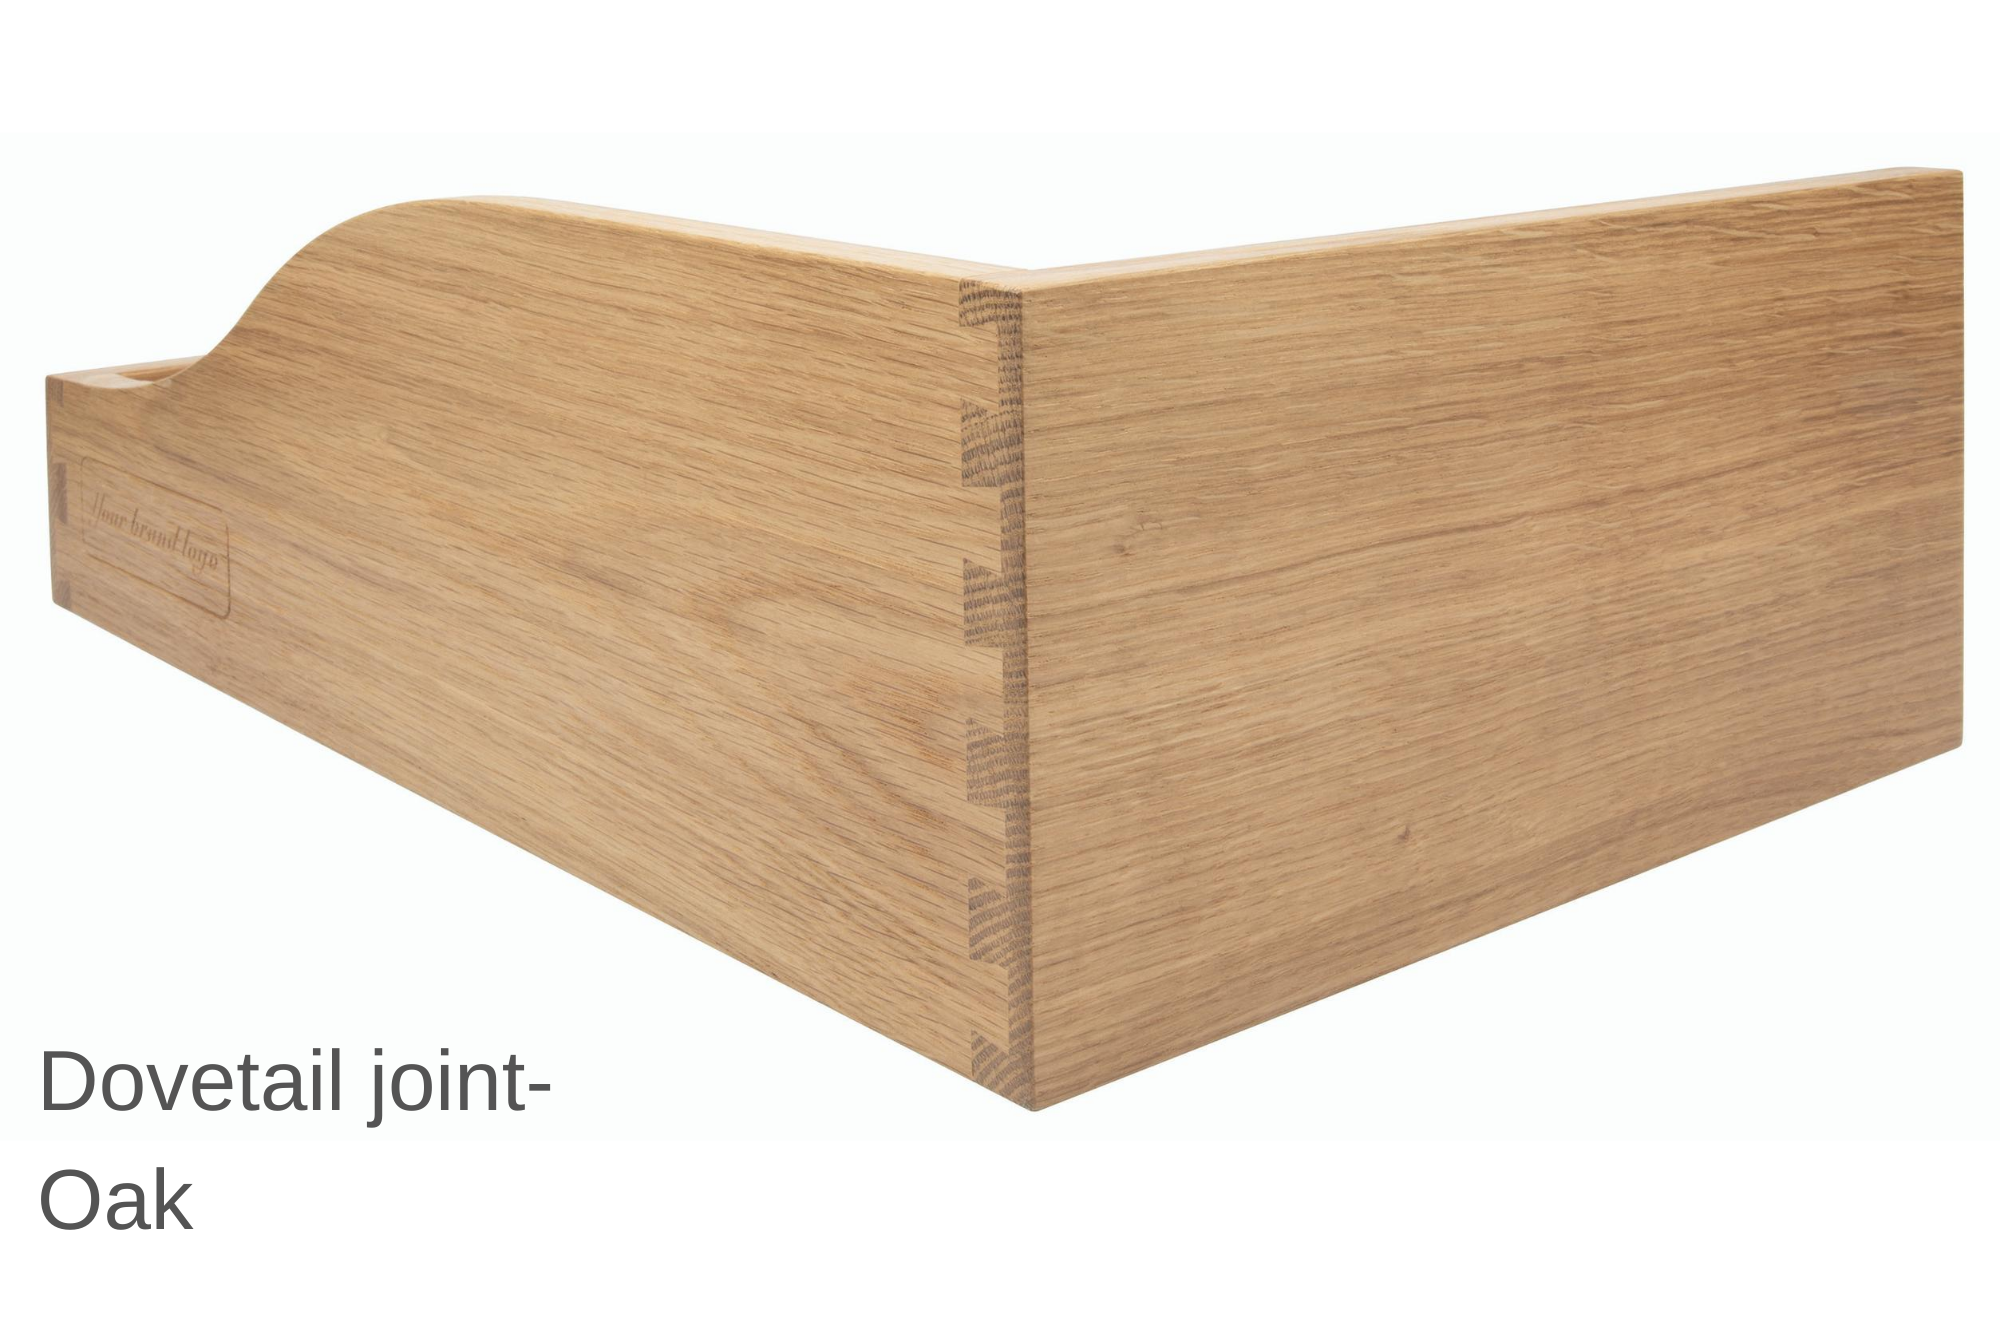 dovetail joint oak